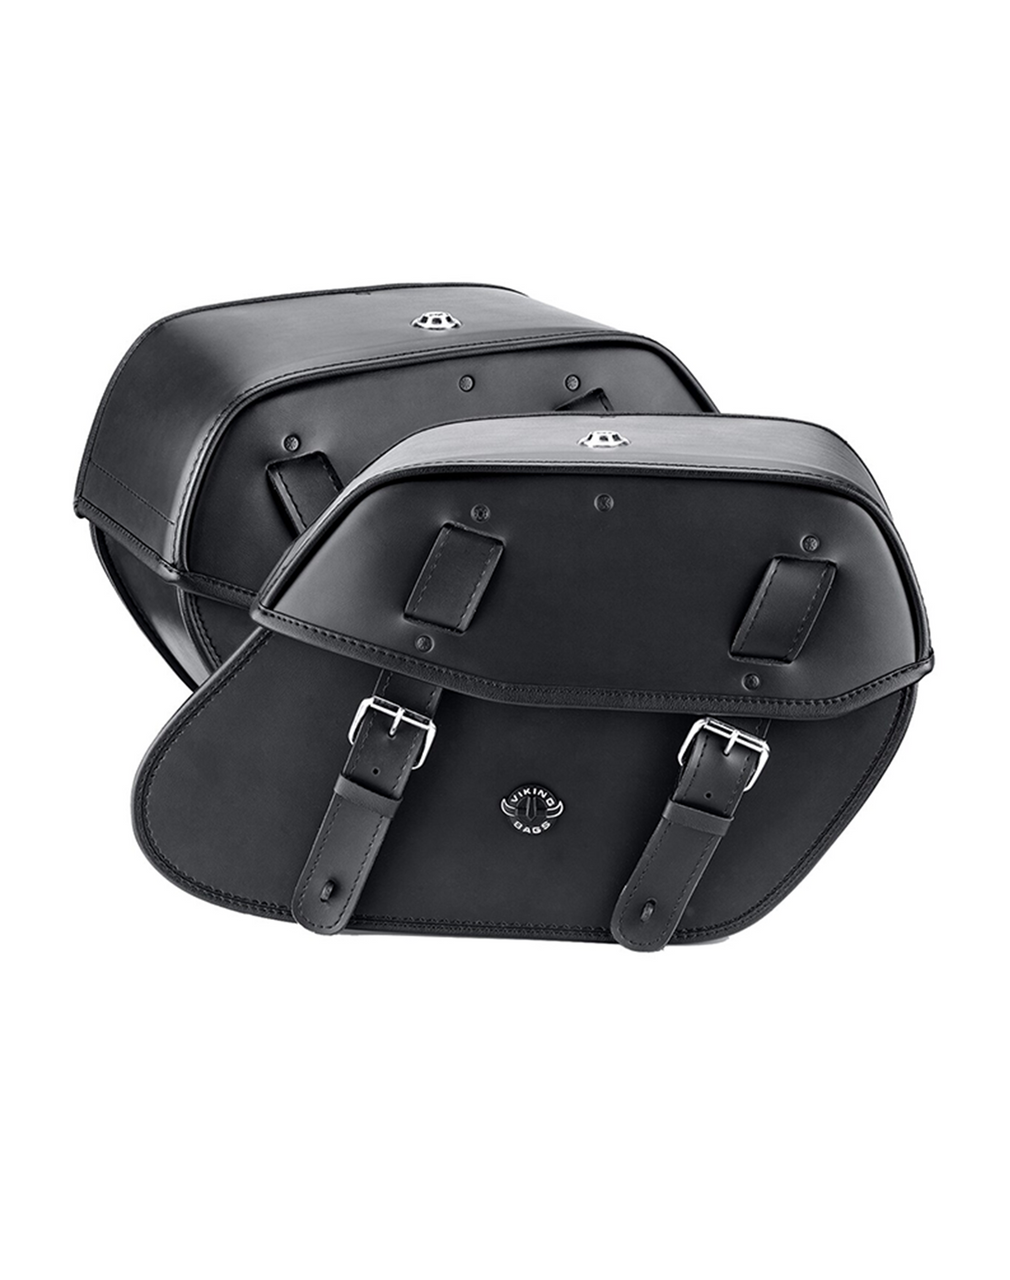 VikingBags Odin Large Double Strap Leather Motorcycle Saddlebags For Harley Softail Breakout 114 FXBRS Both Bags View